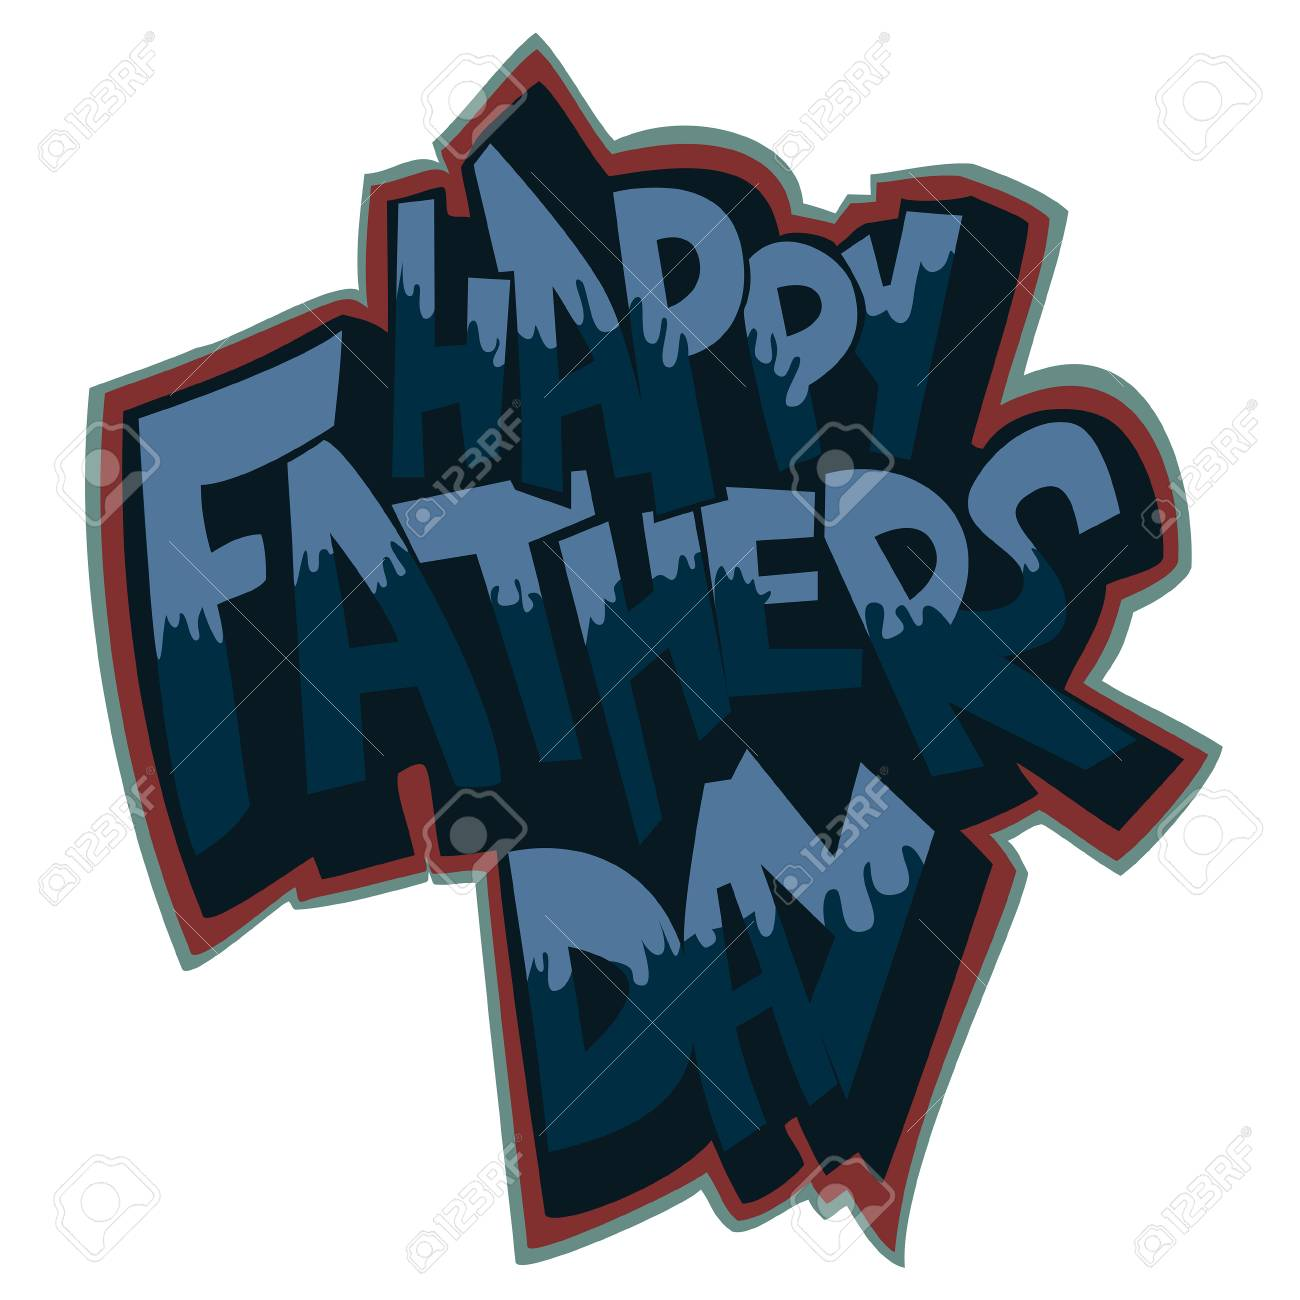 Happy Fathers Day Vector Decorative Text Drawing In Graffiti Style